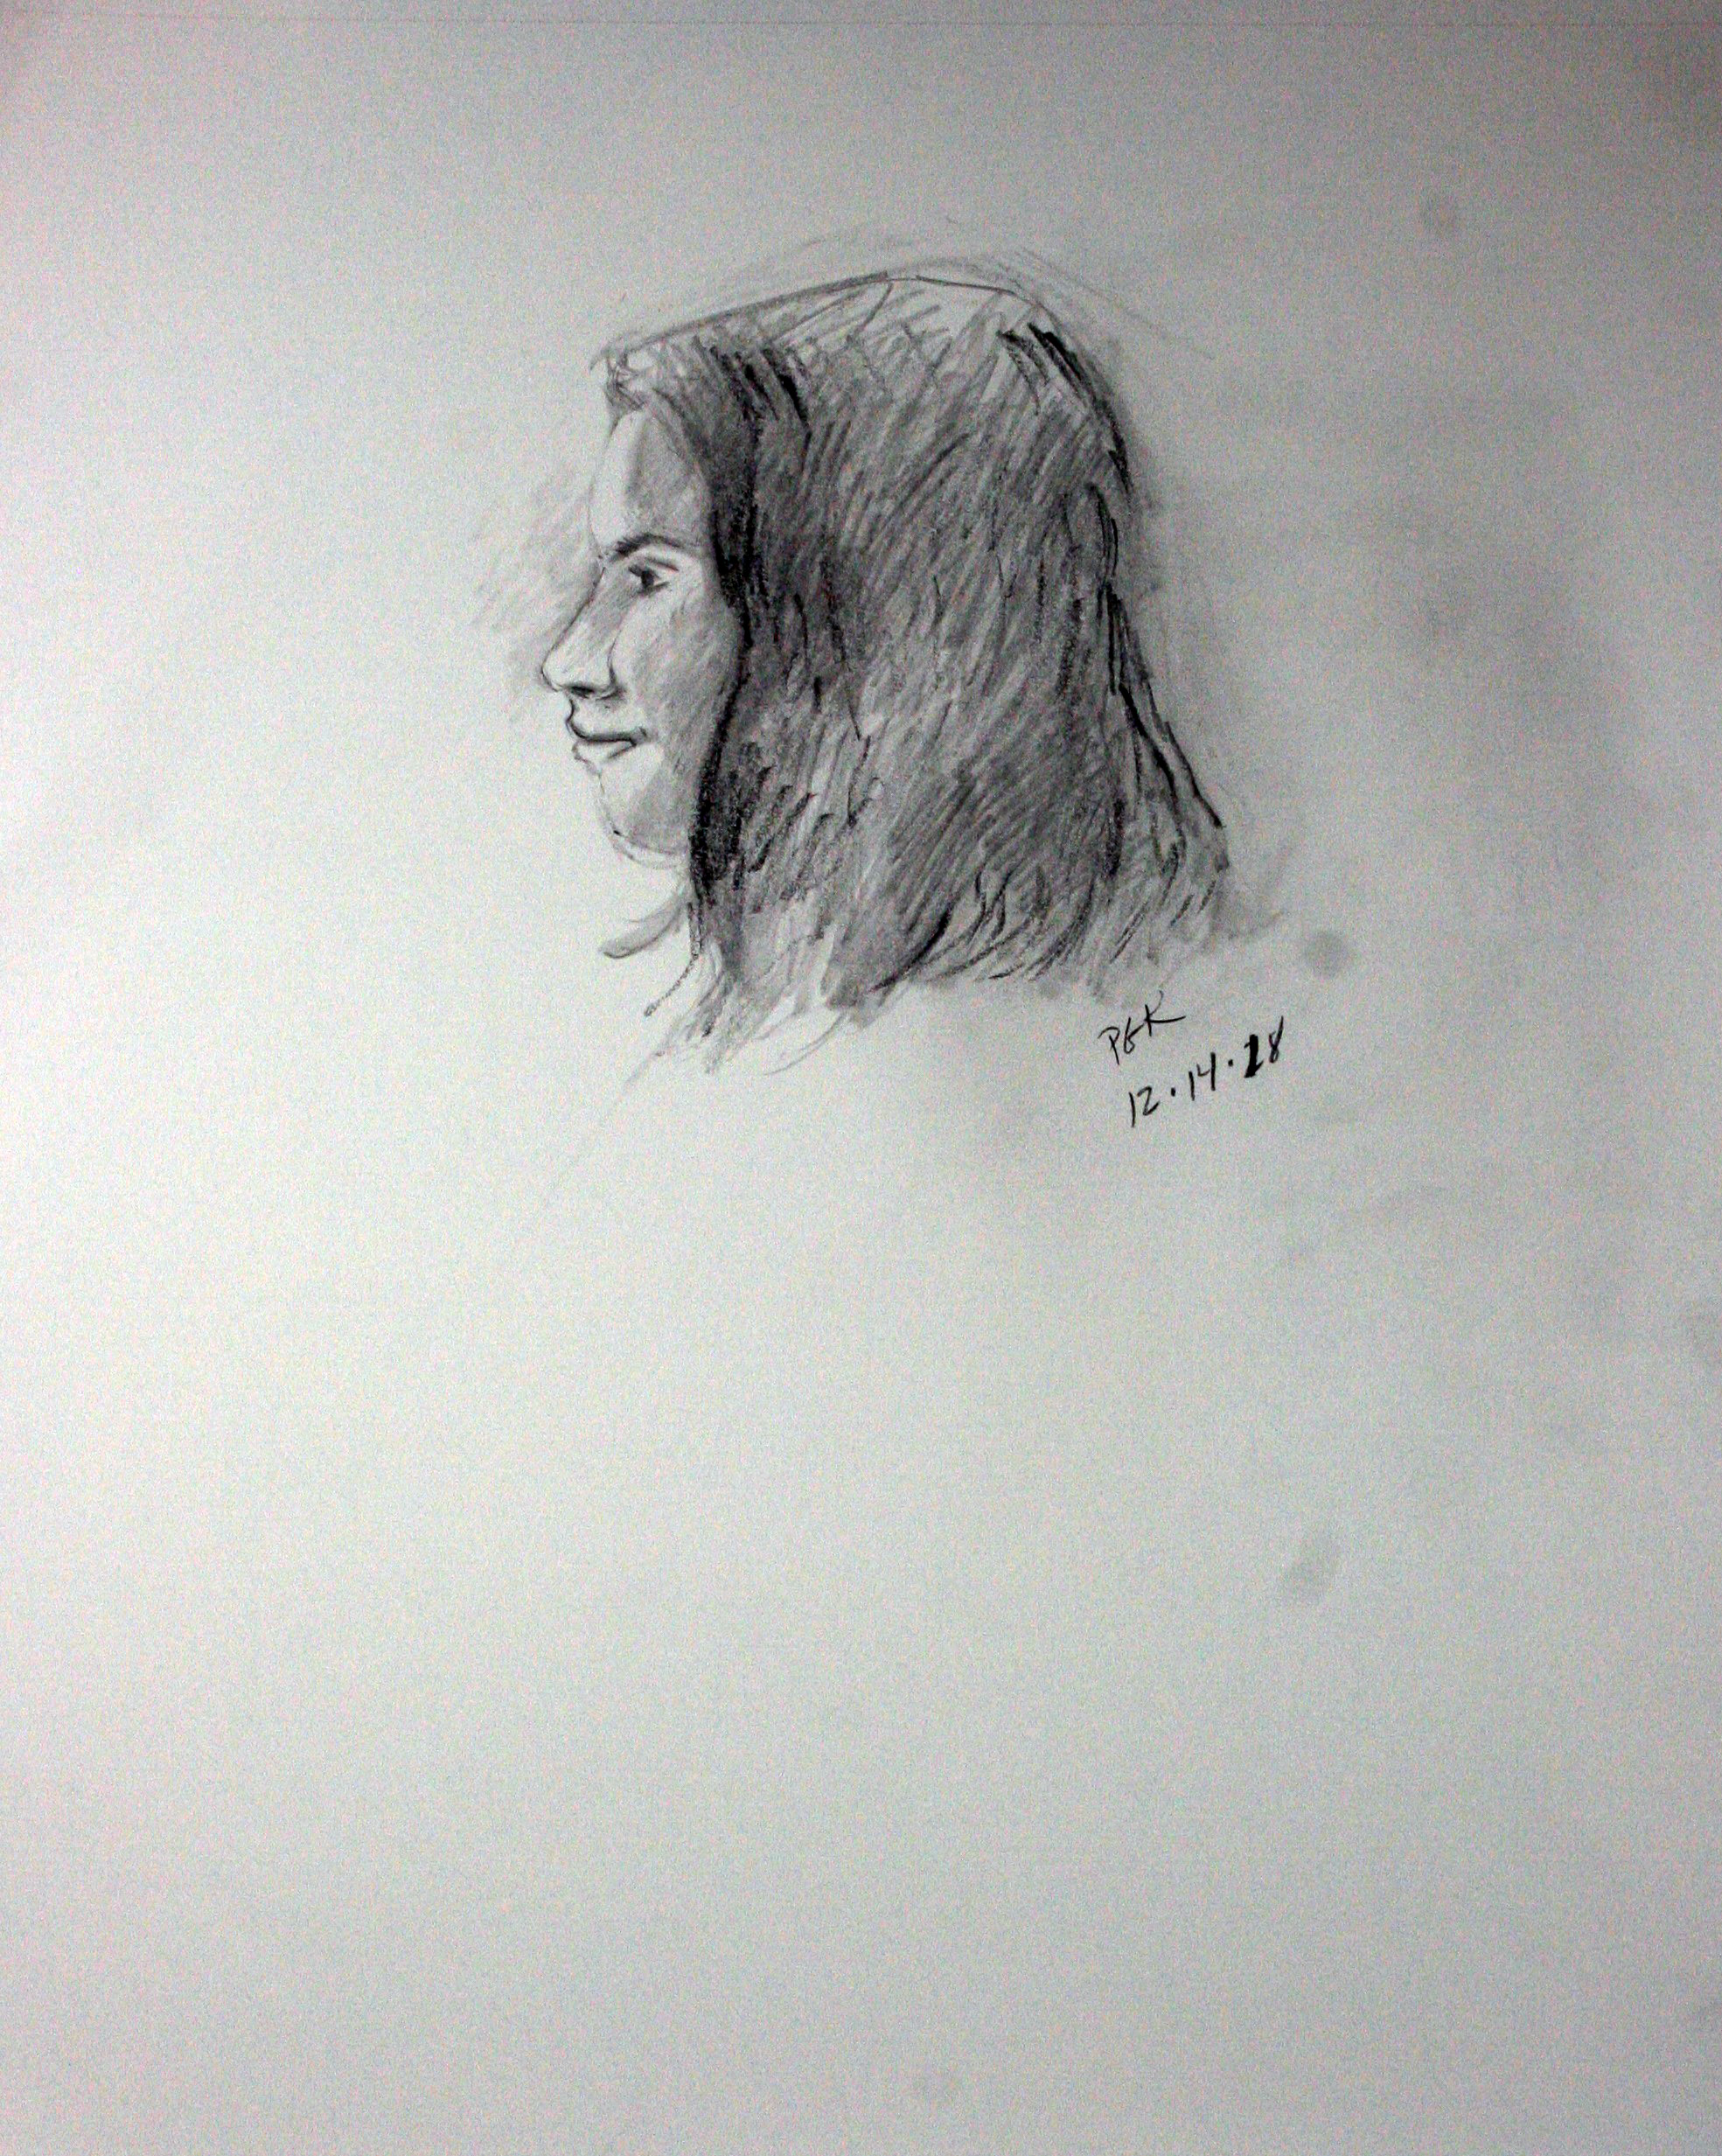 Paulette Krieger did this drawing of Tillie.